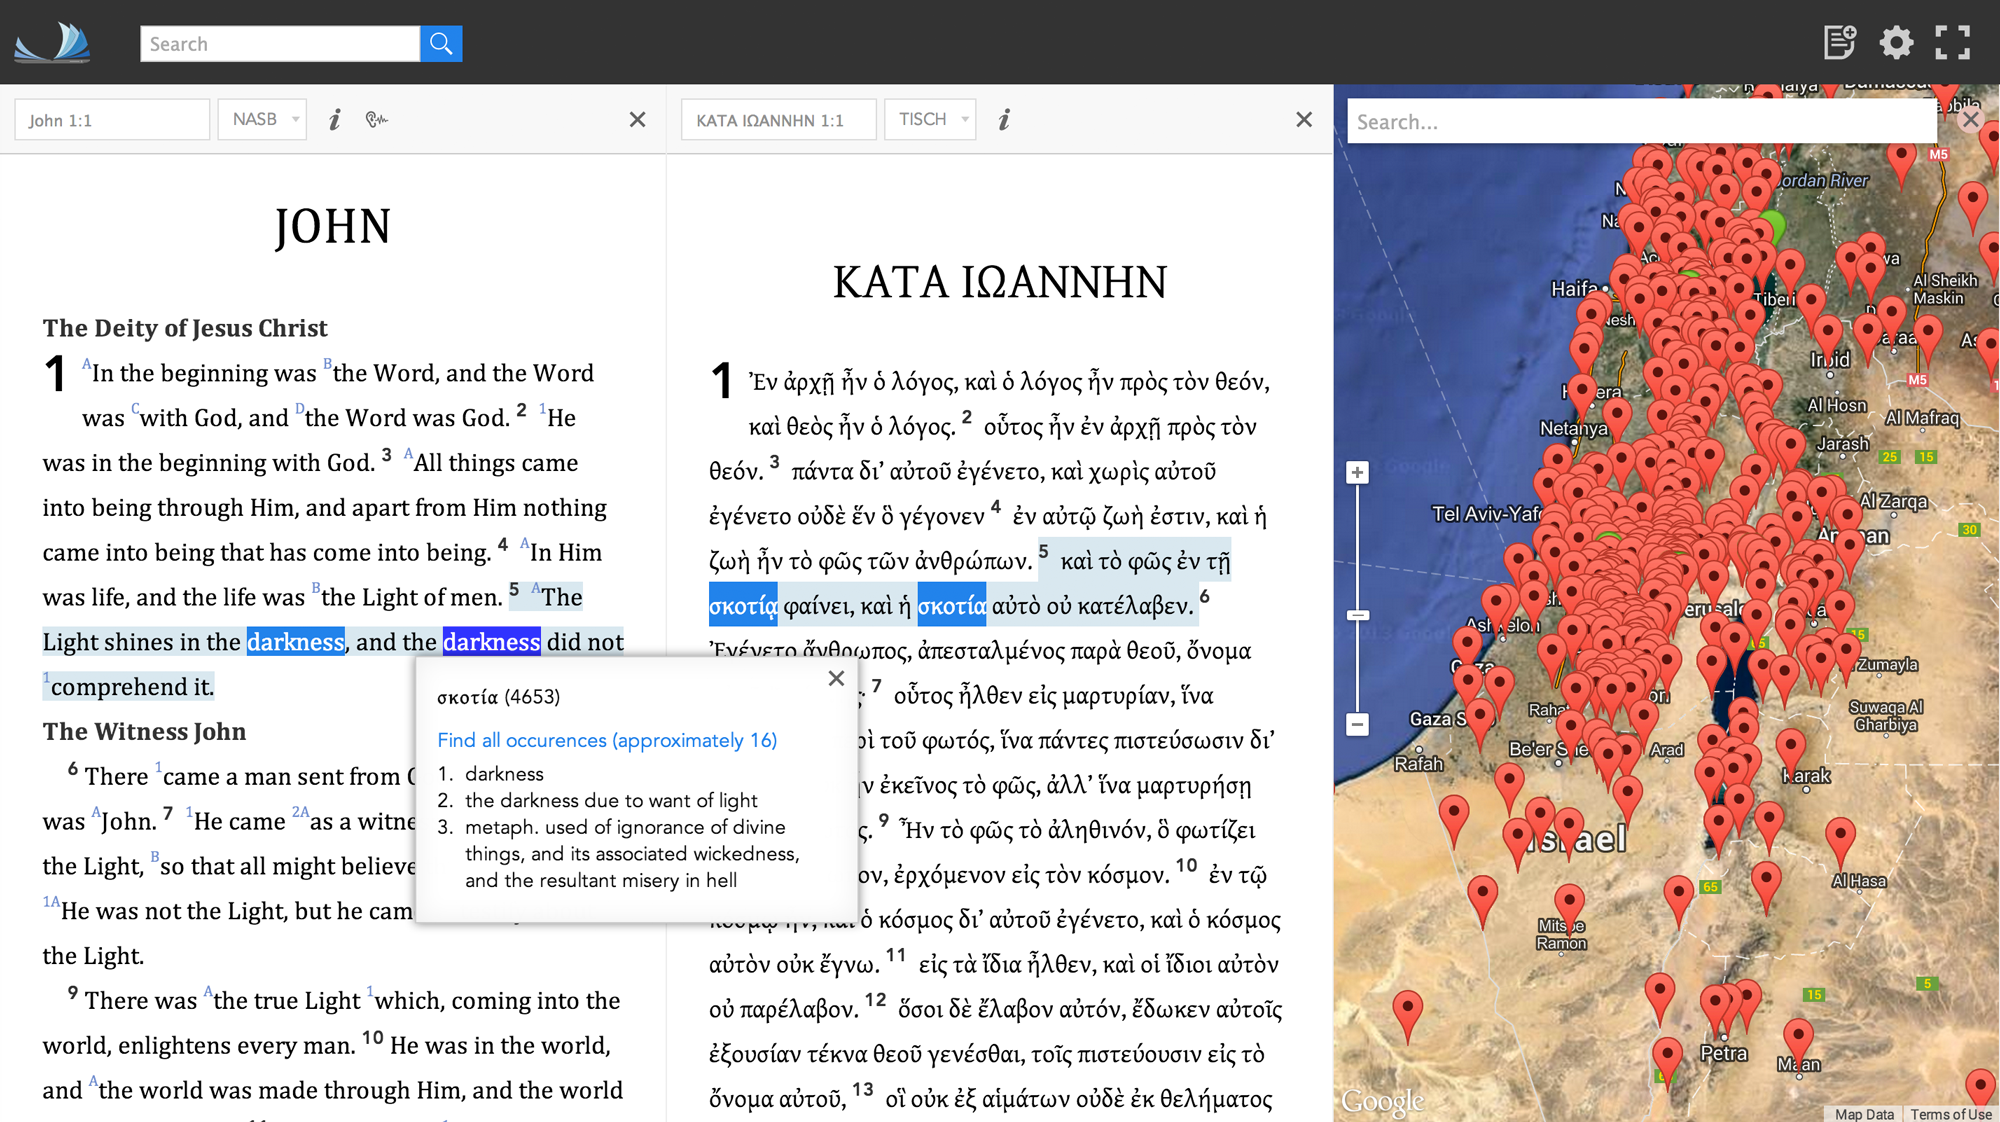 Bible Study App - Greek, Hebrew, Maps, Search